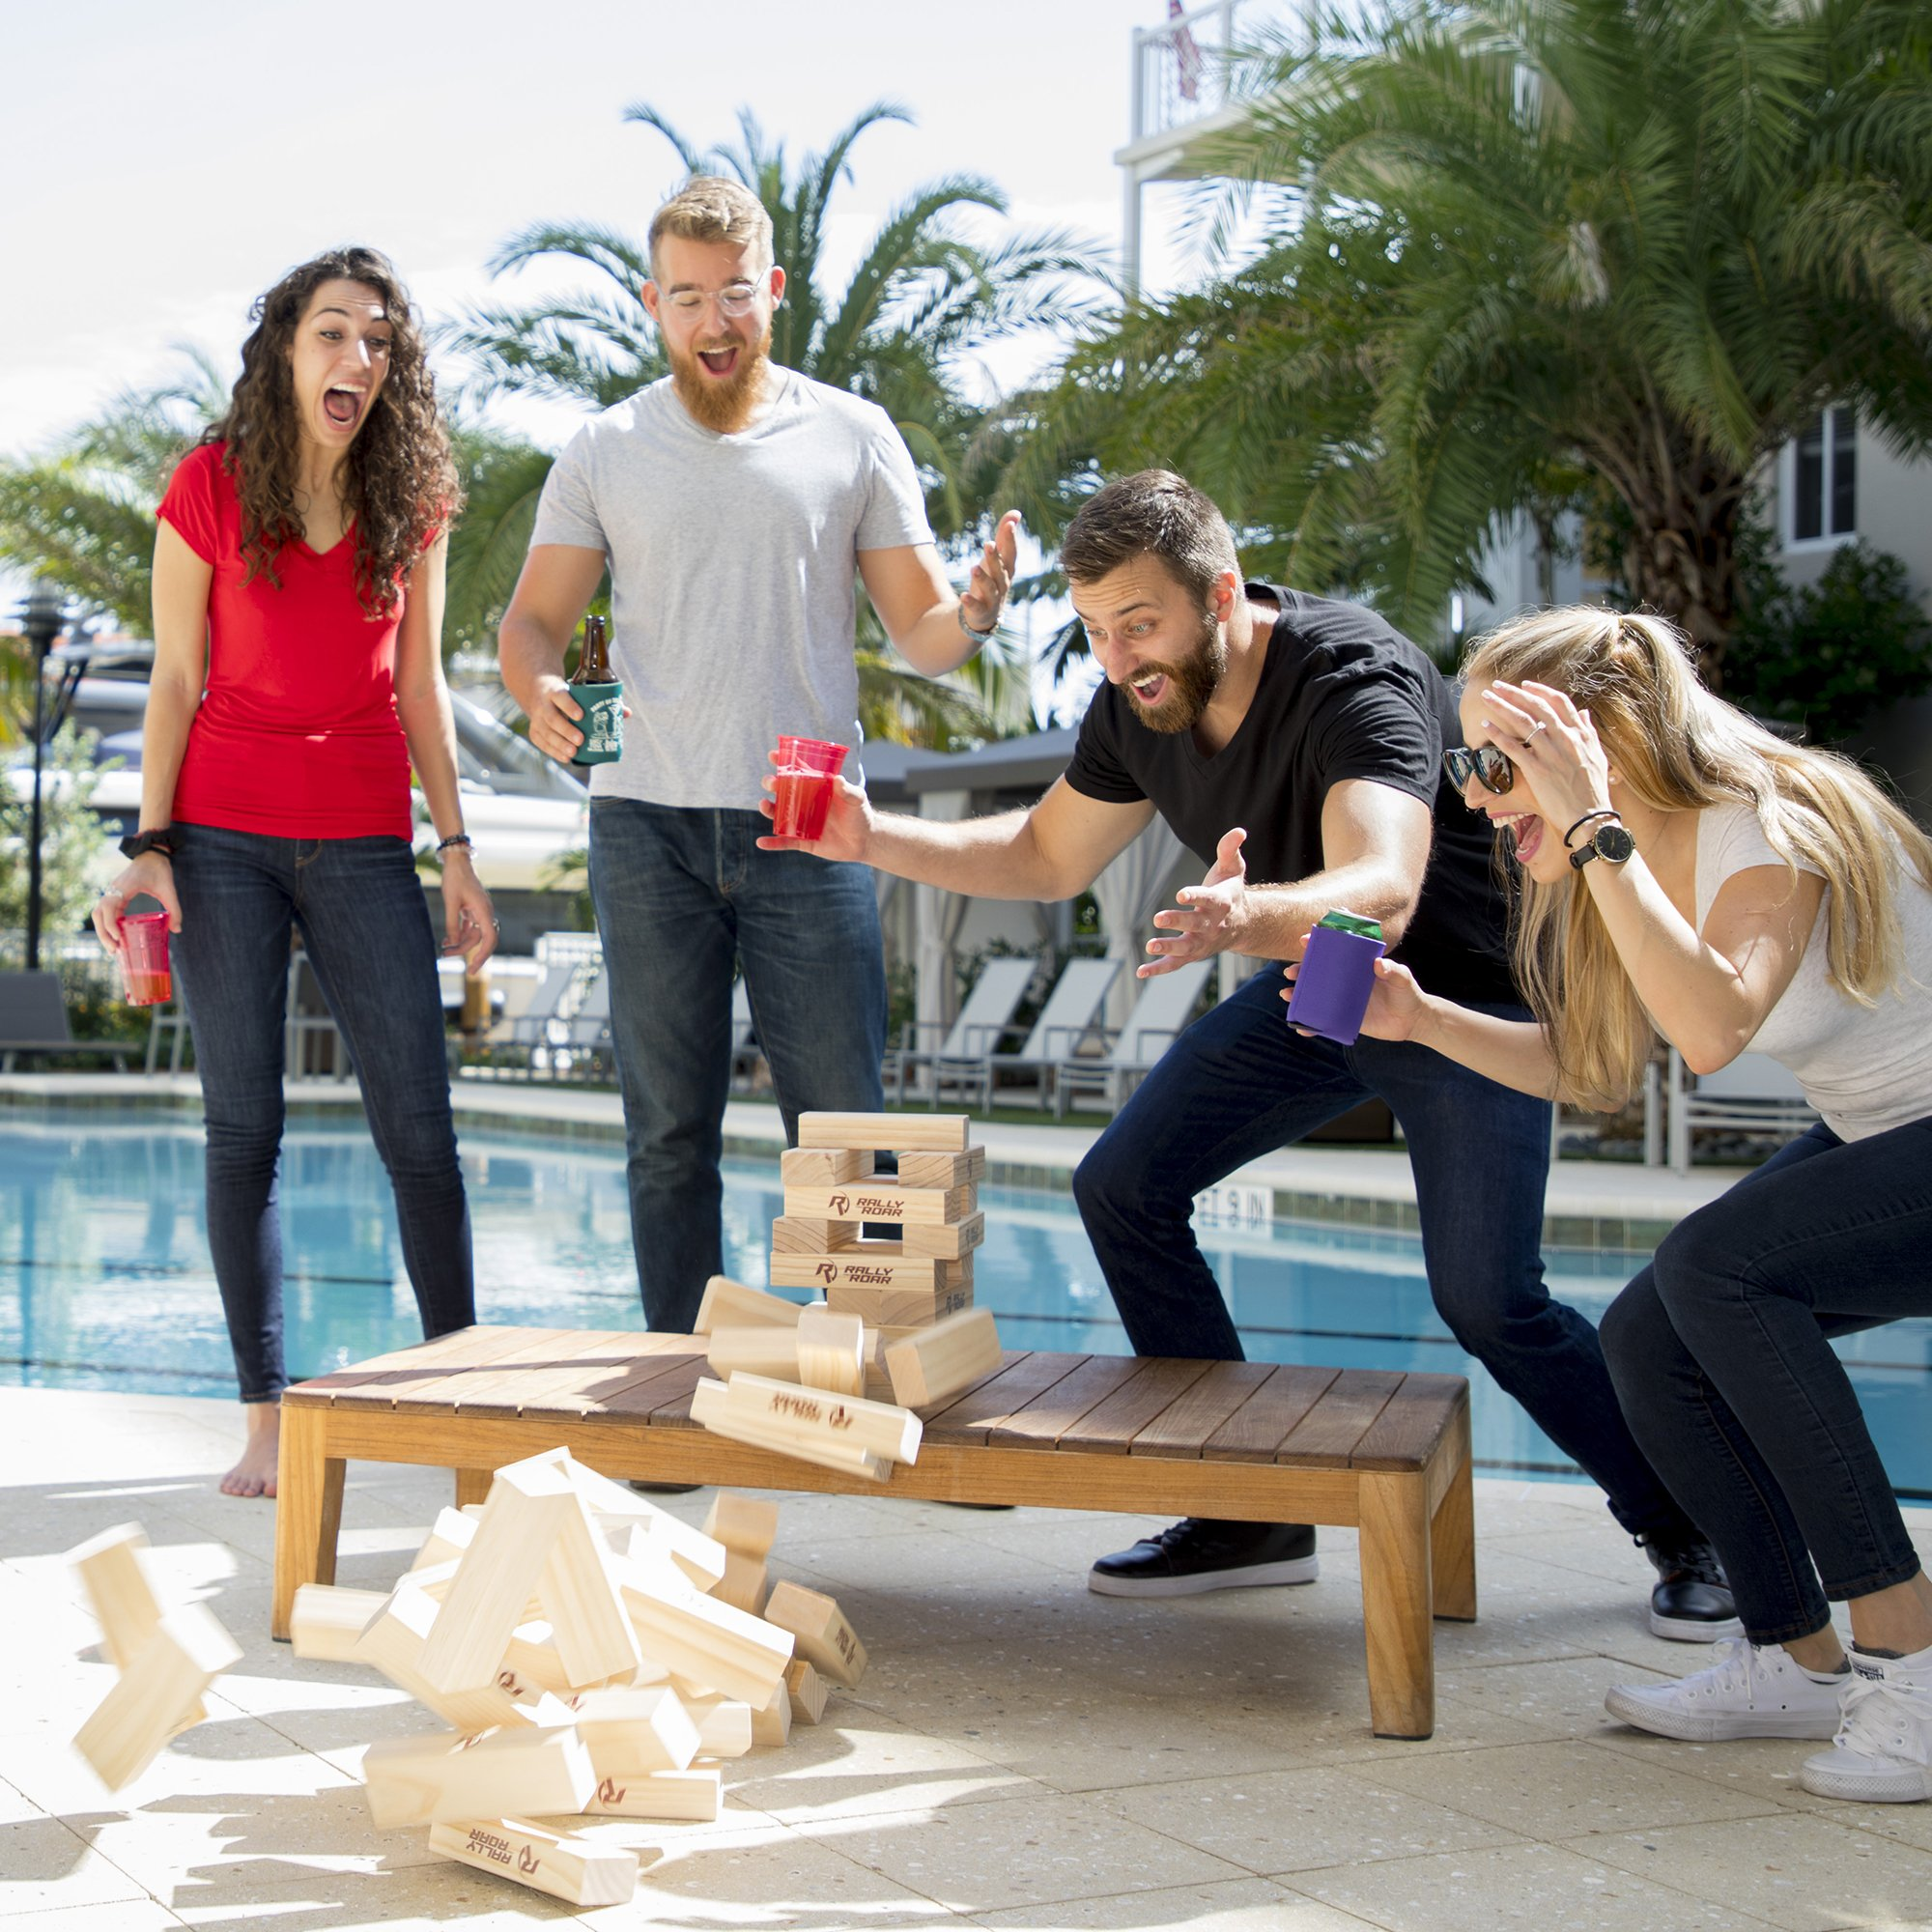 Rally and Roar Toppling Tower Giant Tumbling Timbers Game 2.5 feet Tall (Build to Over 5 feet)– Classic Wood Version - for Adults, Kids, Family – Stacking Blocks Set w/Canvas Bag by Rally and Roar (Image #6)